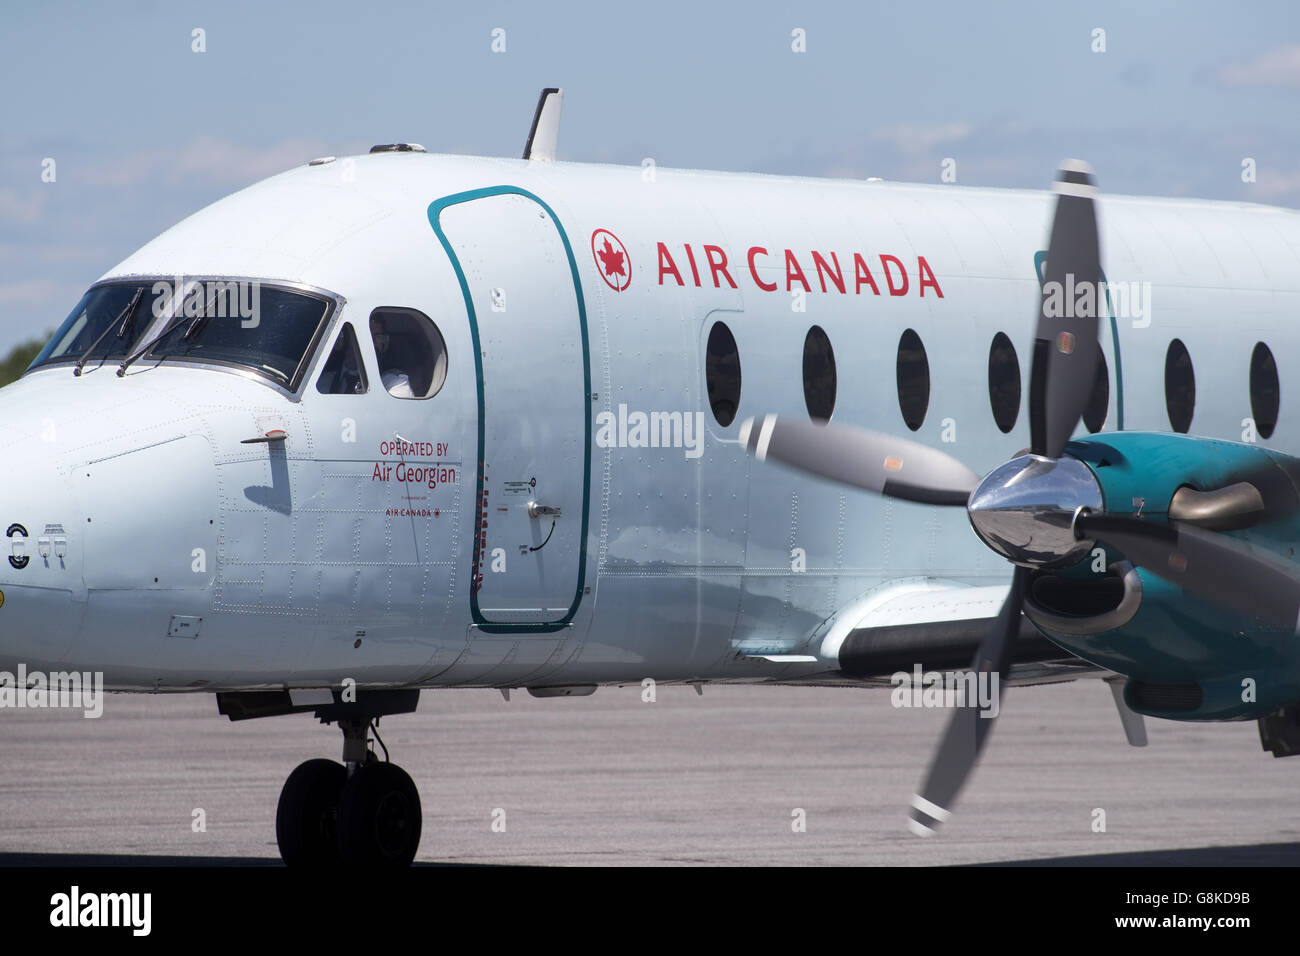 Air Canada Express Beechcraft 1900D aircraft, operated by Georgian air taxis to the runway Norman Rogers airport. - Stock Image